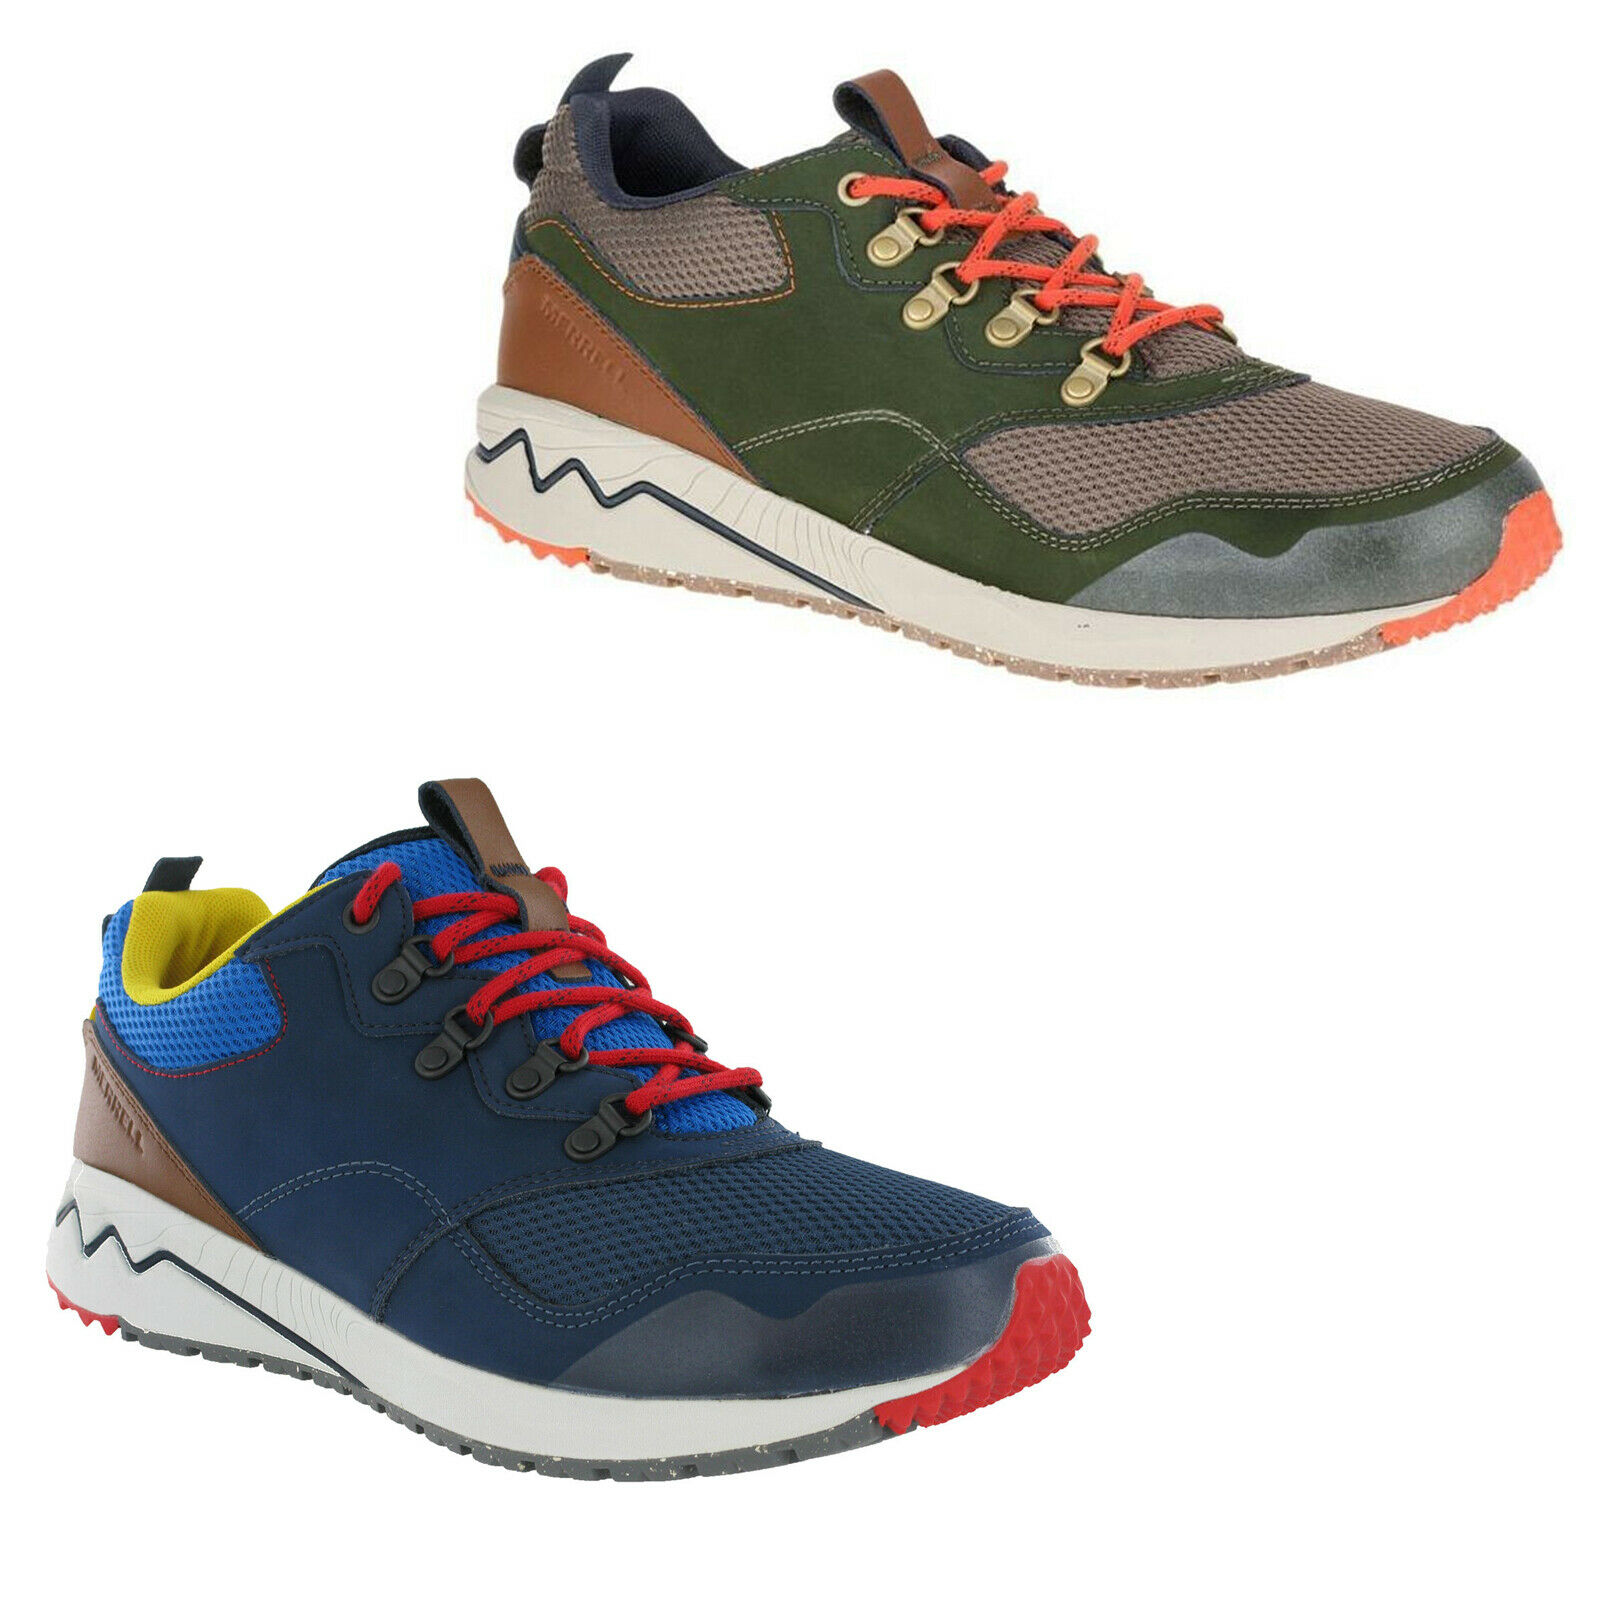 Merrell Stowe Trainers Leather Mesh Walking Mens Lace Up Casual Sneakers Shoes